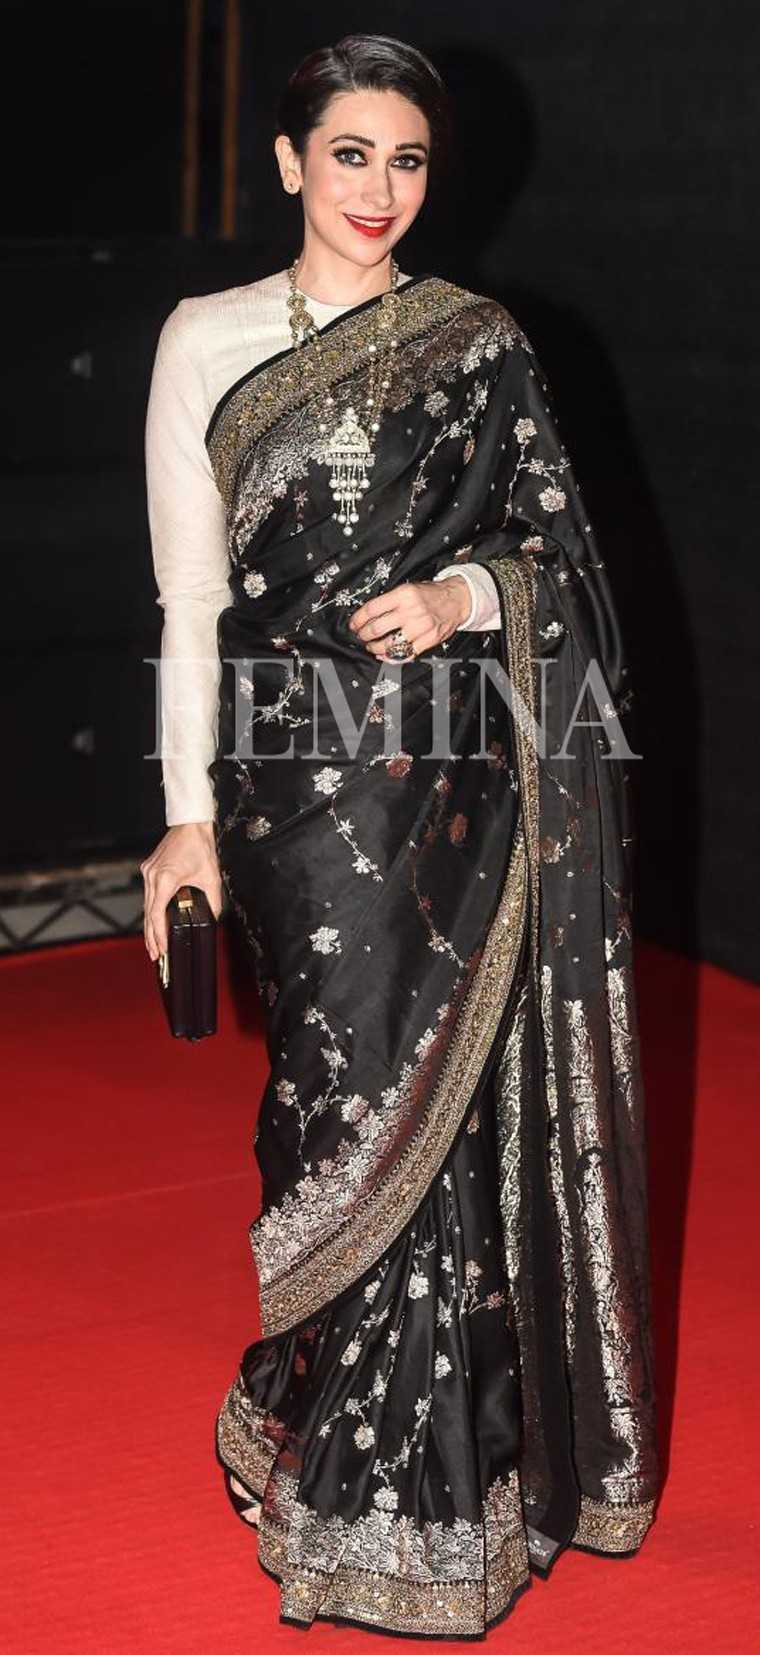 Karisma paired her black and gold Sabyasachi sari with a full-sleeved high neck white blouse. Gold jewellery from Amrapali added a regal finish.